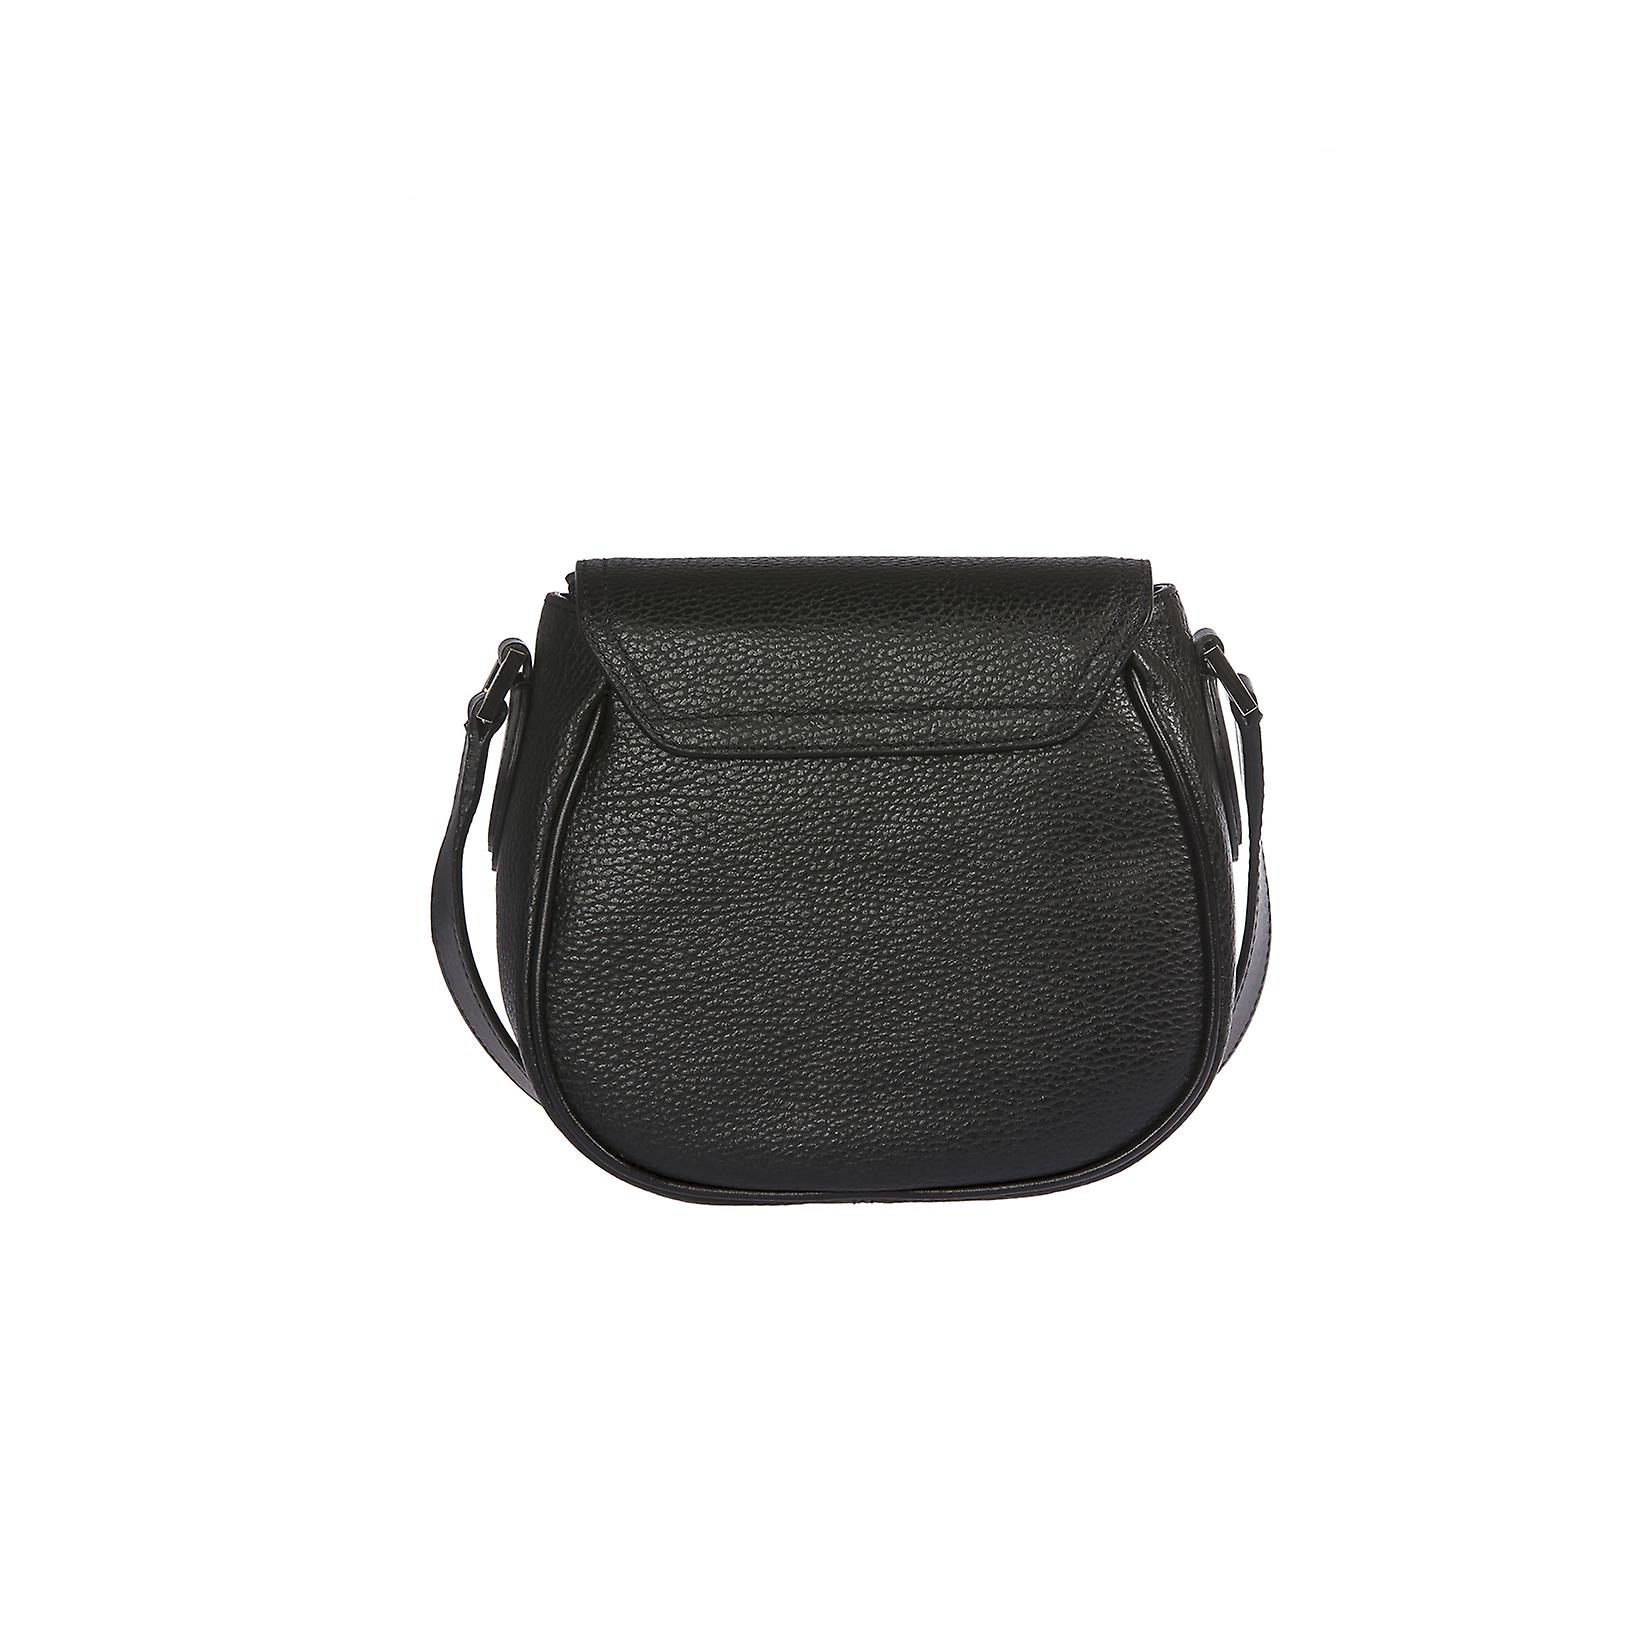 Trussardi Woman's shoulder bag 100% genuine leather Smooth Calf and Dollar-19x16, 5 x 10 cm